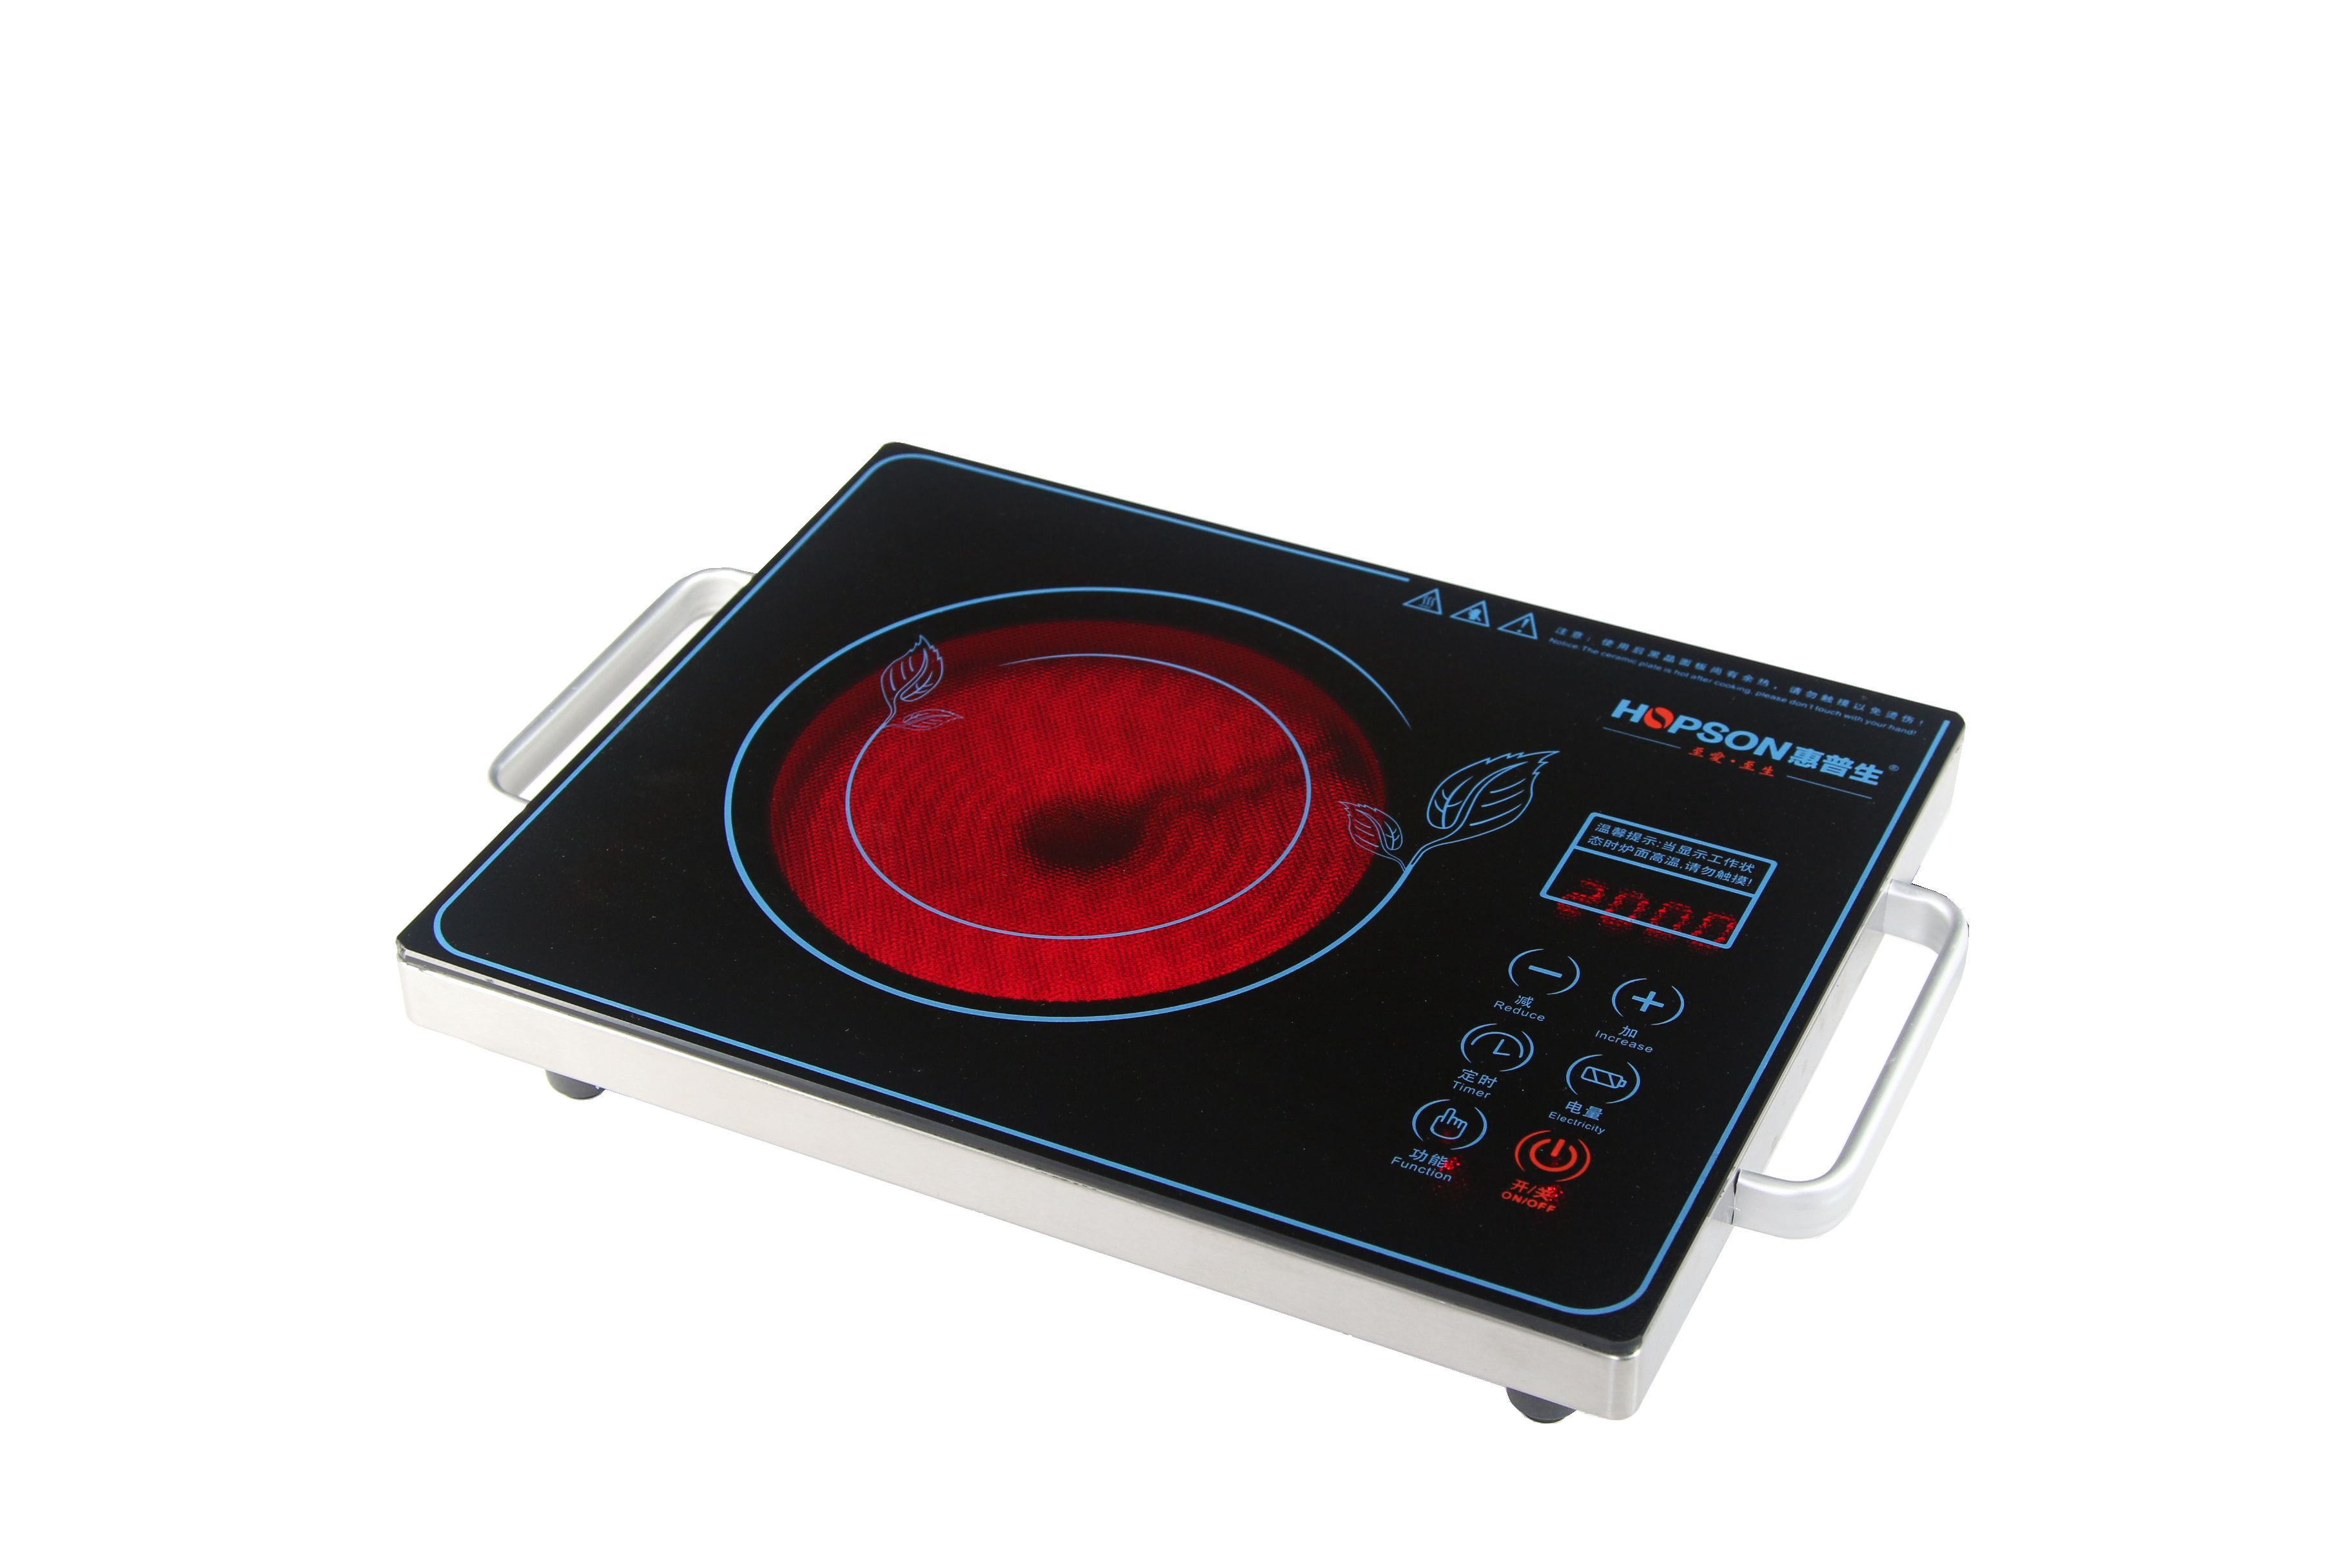 Infrared Cooker Hot Plates Electric Stoves Electric Induction Cooker Home Appliances Cooking Appliances Induction Cooke Fun Cooking Cooking Appliances Cooker